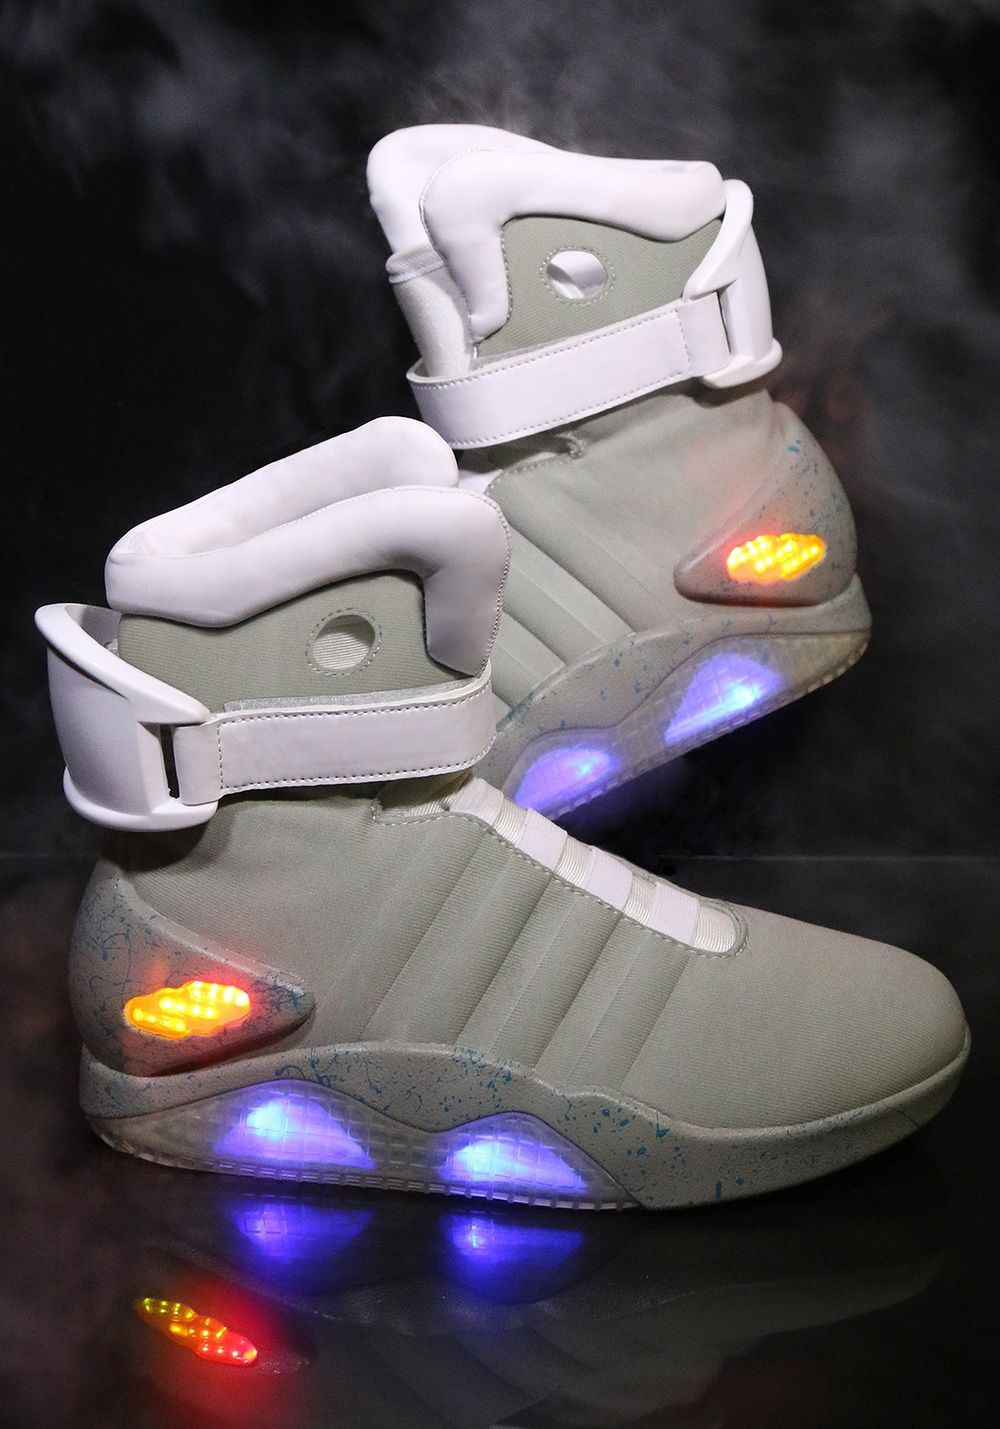 Official BACK TO THE FUTURE II Light Up Shoes — Now 590% Cheaper